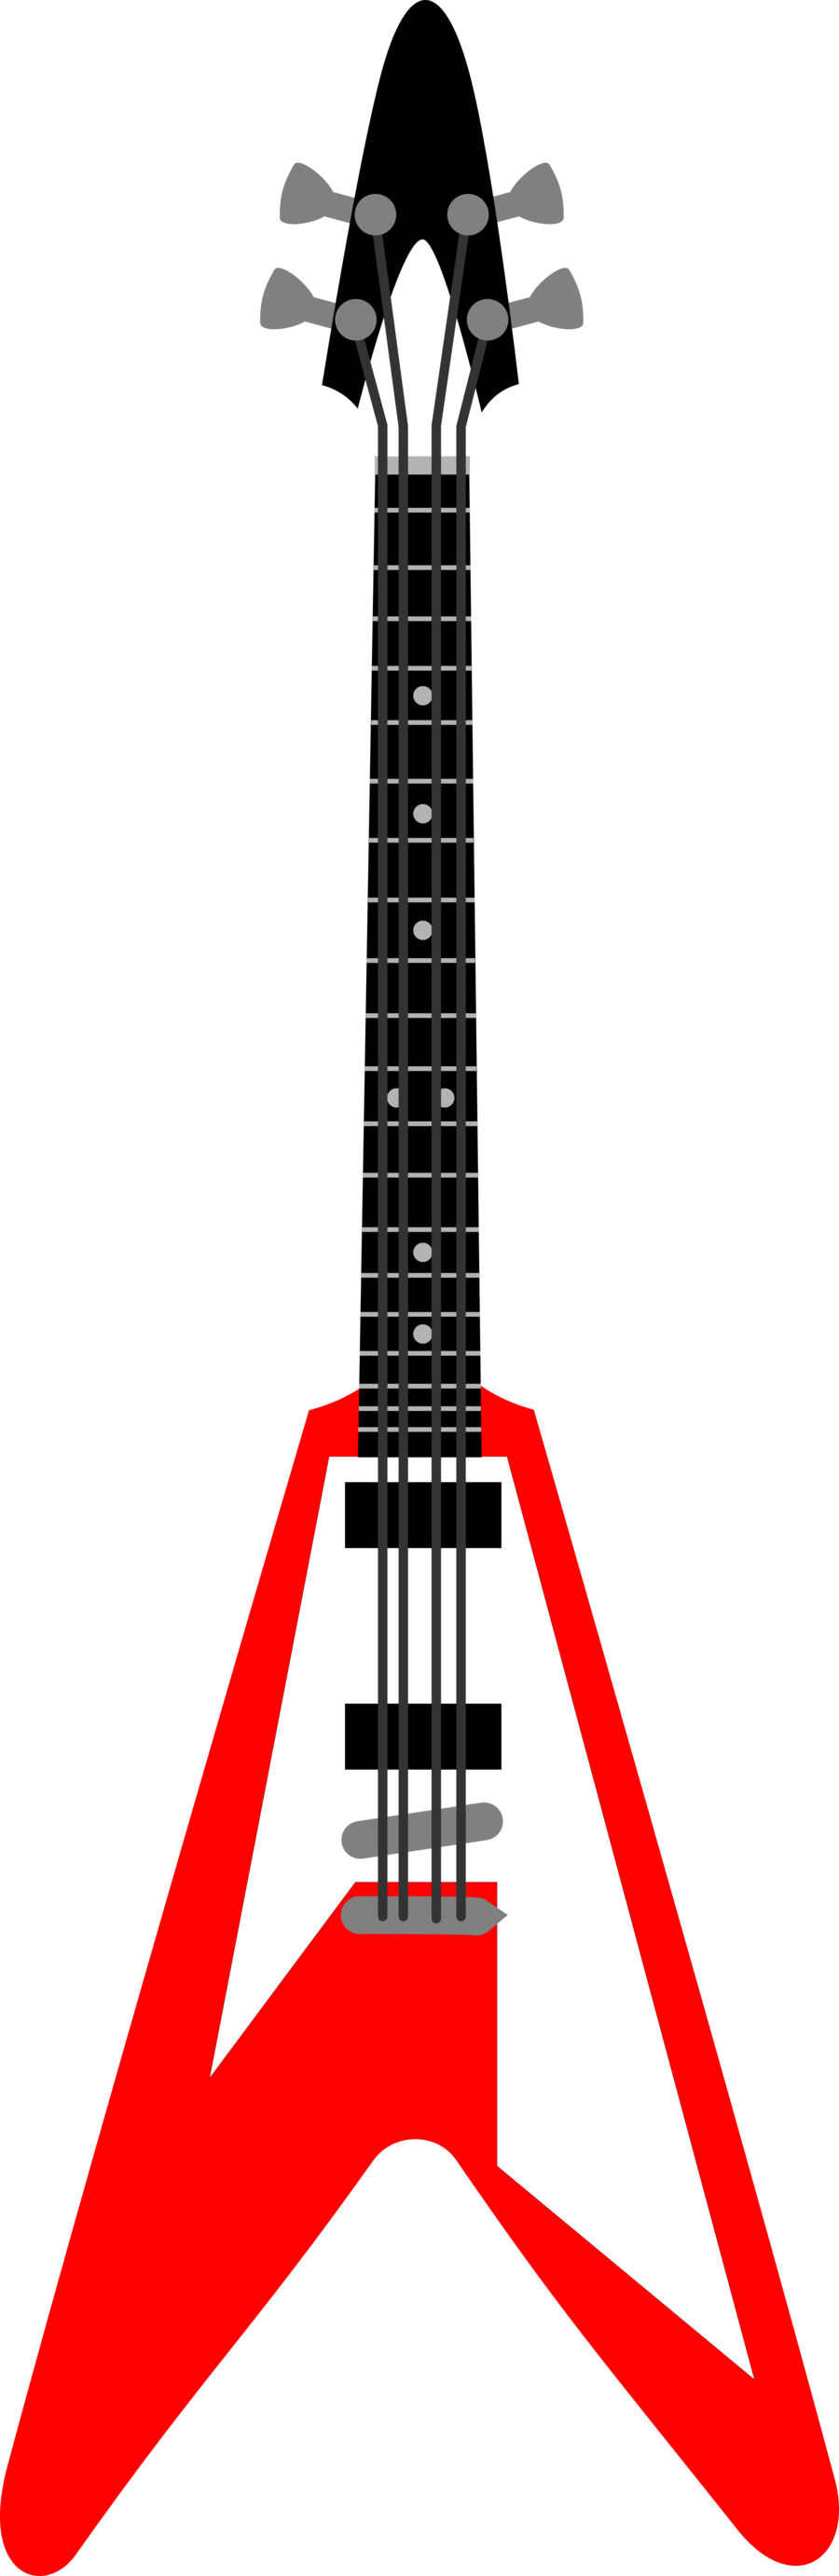 Jokingart com . Clipart guitar country guitar